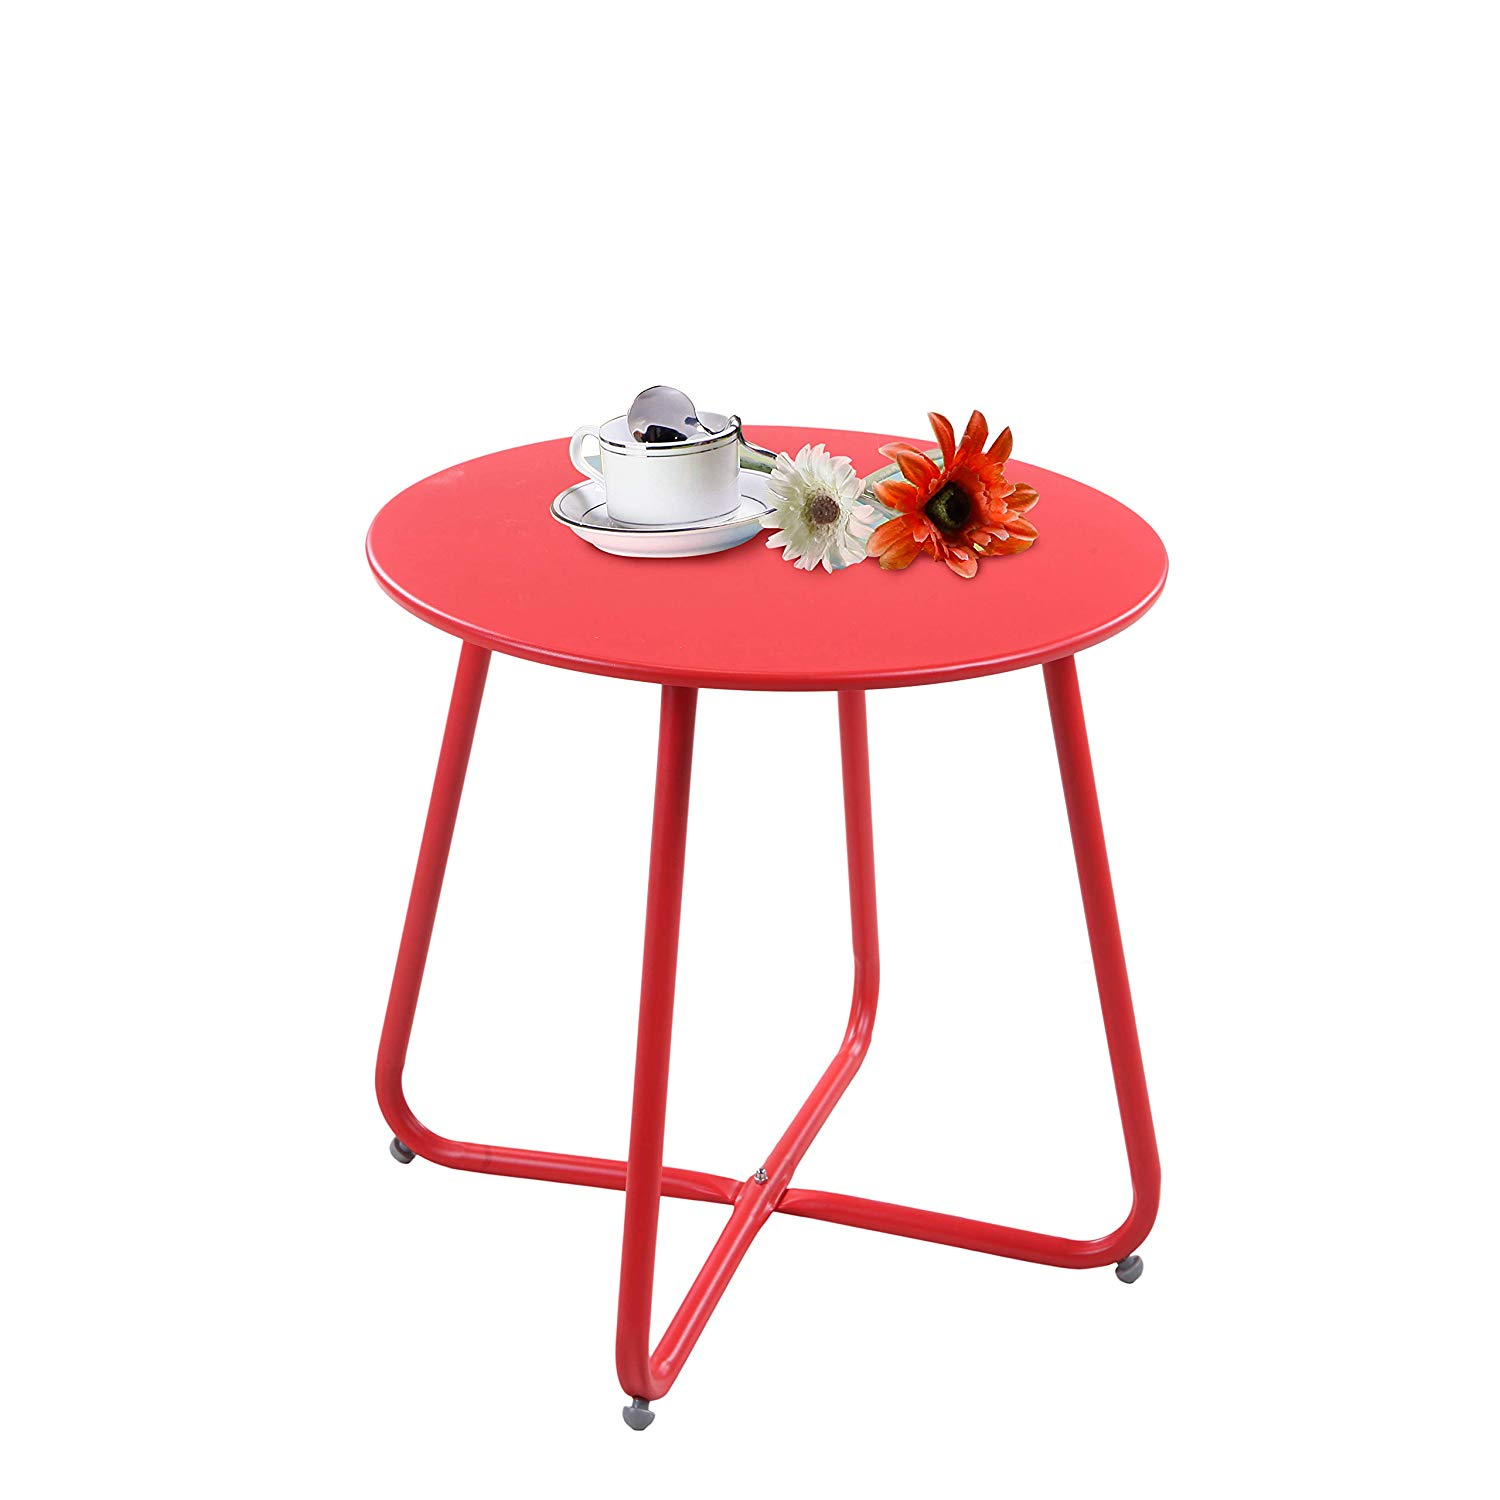 grand patio steel coffee table weather resistant small outdoor accent side round end tables red garden target large bar teal cabinet ballard pillows lamp shades farmhouse wrought